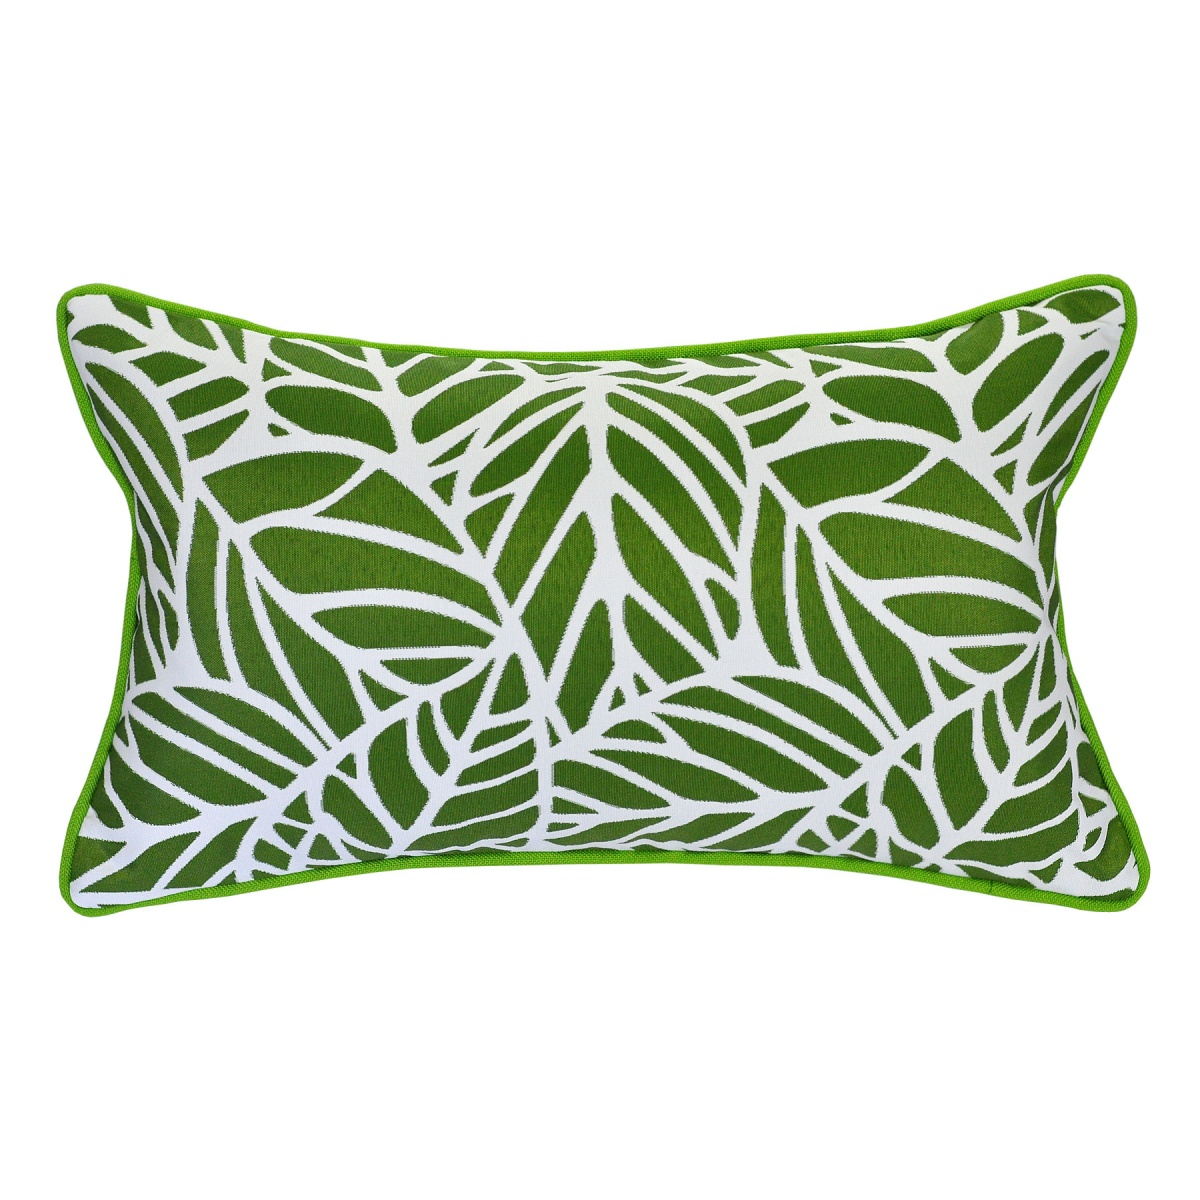 Tulum Palm Outdoor Cushion with Piping - 30x50cm